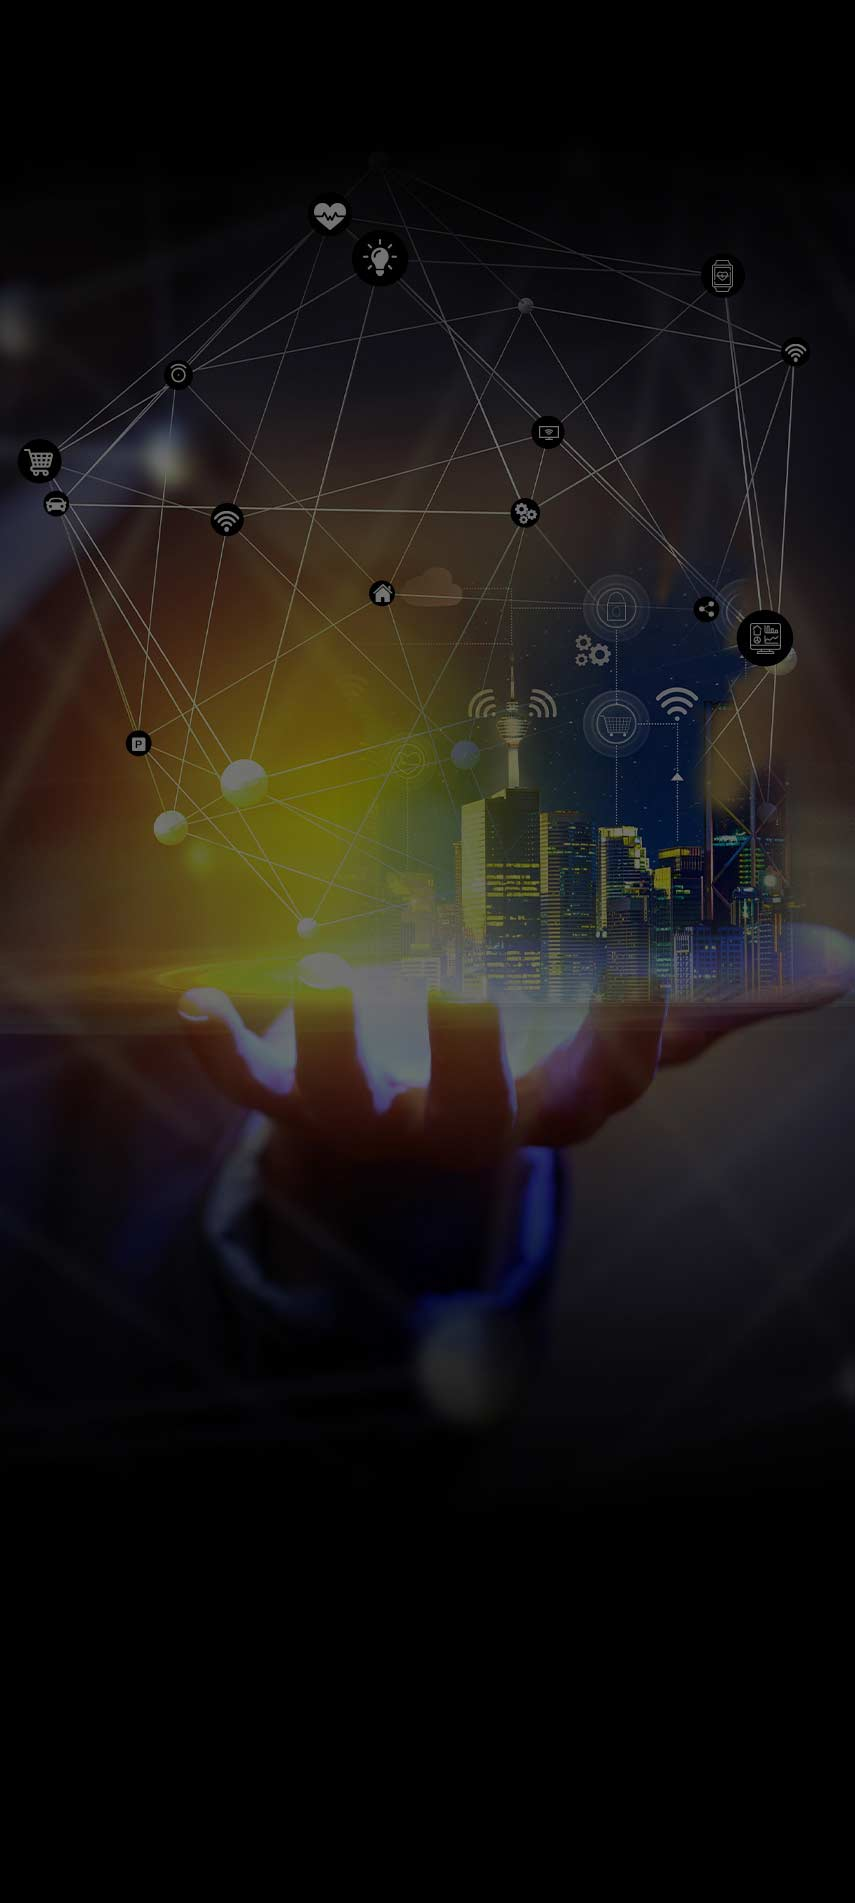 Product Engineering Services | Digital Transformation - IoT